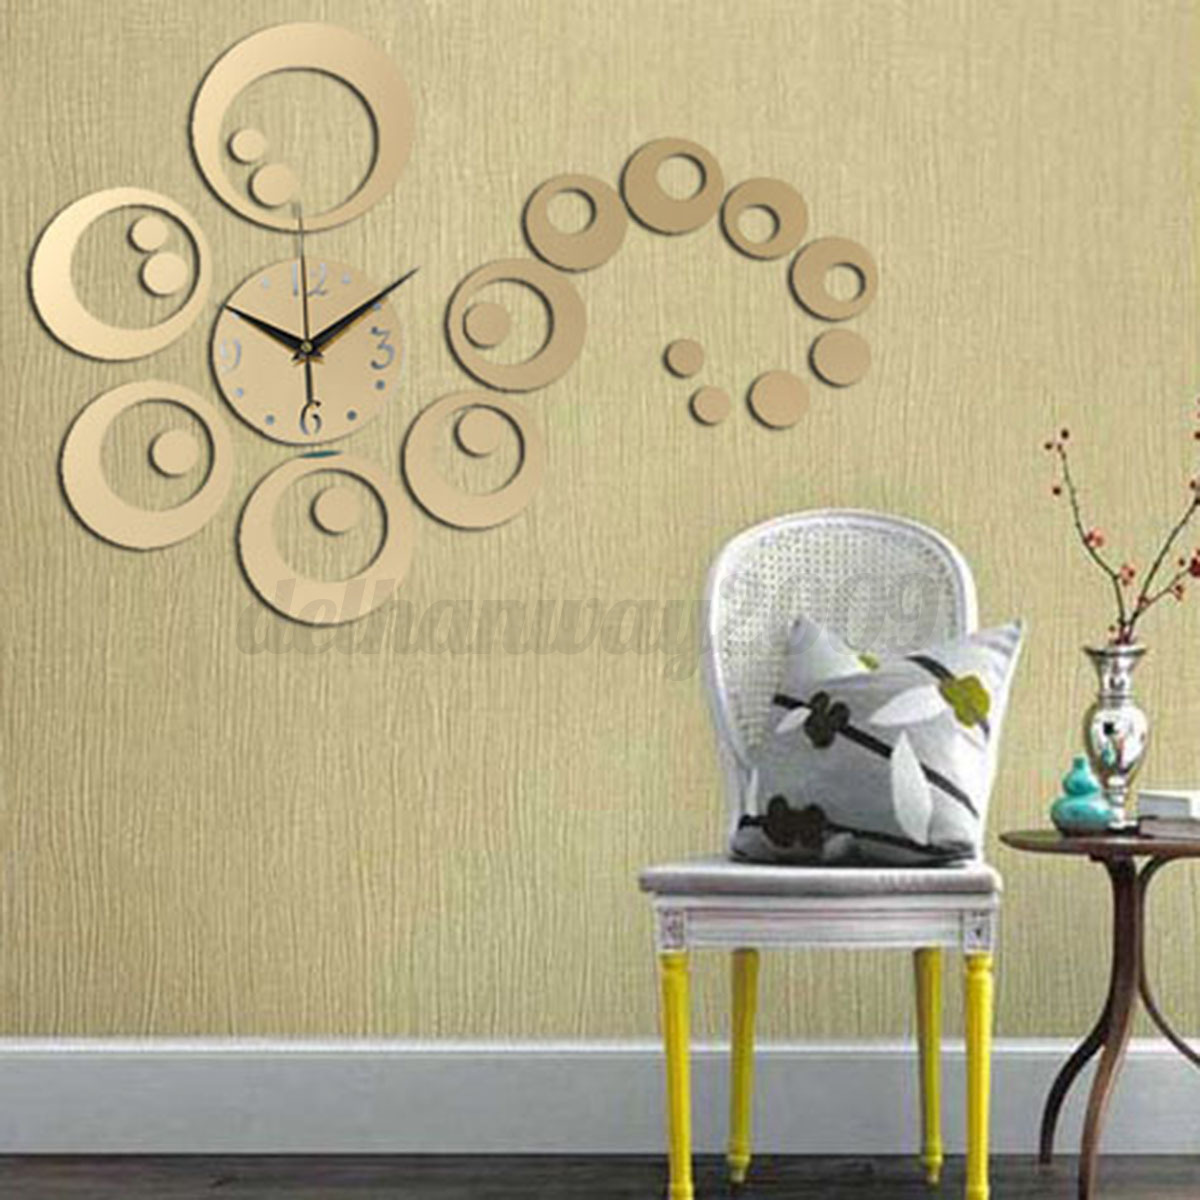 diy 3d horloge murale moderne design miroir decor maison salon chambre bureau ebay. Black Bedroom Furniture Sets. Home Design Ideas